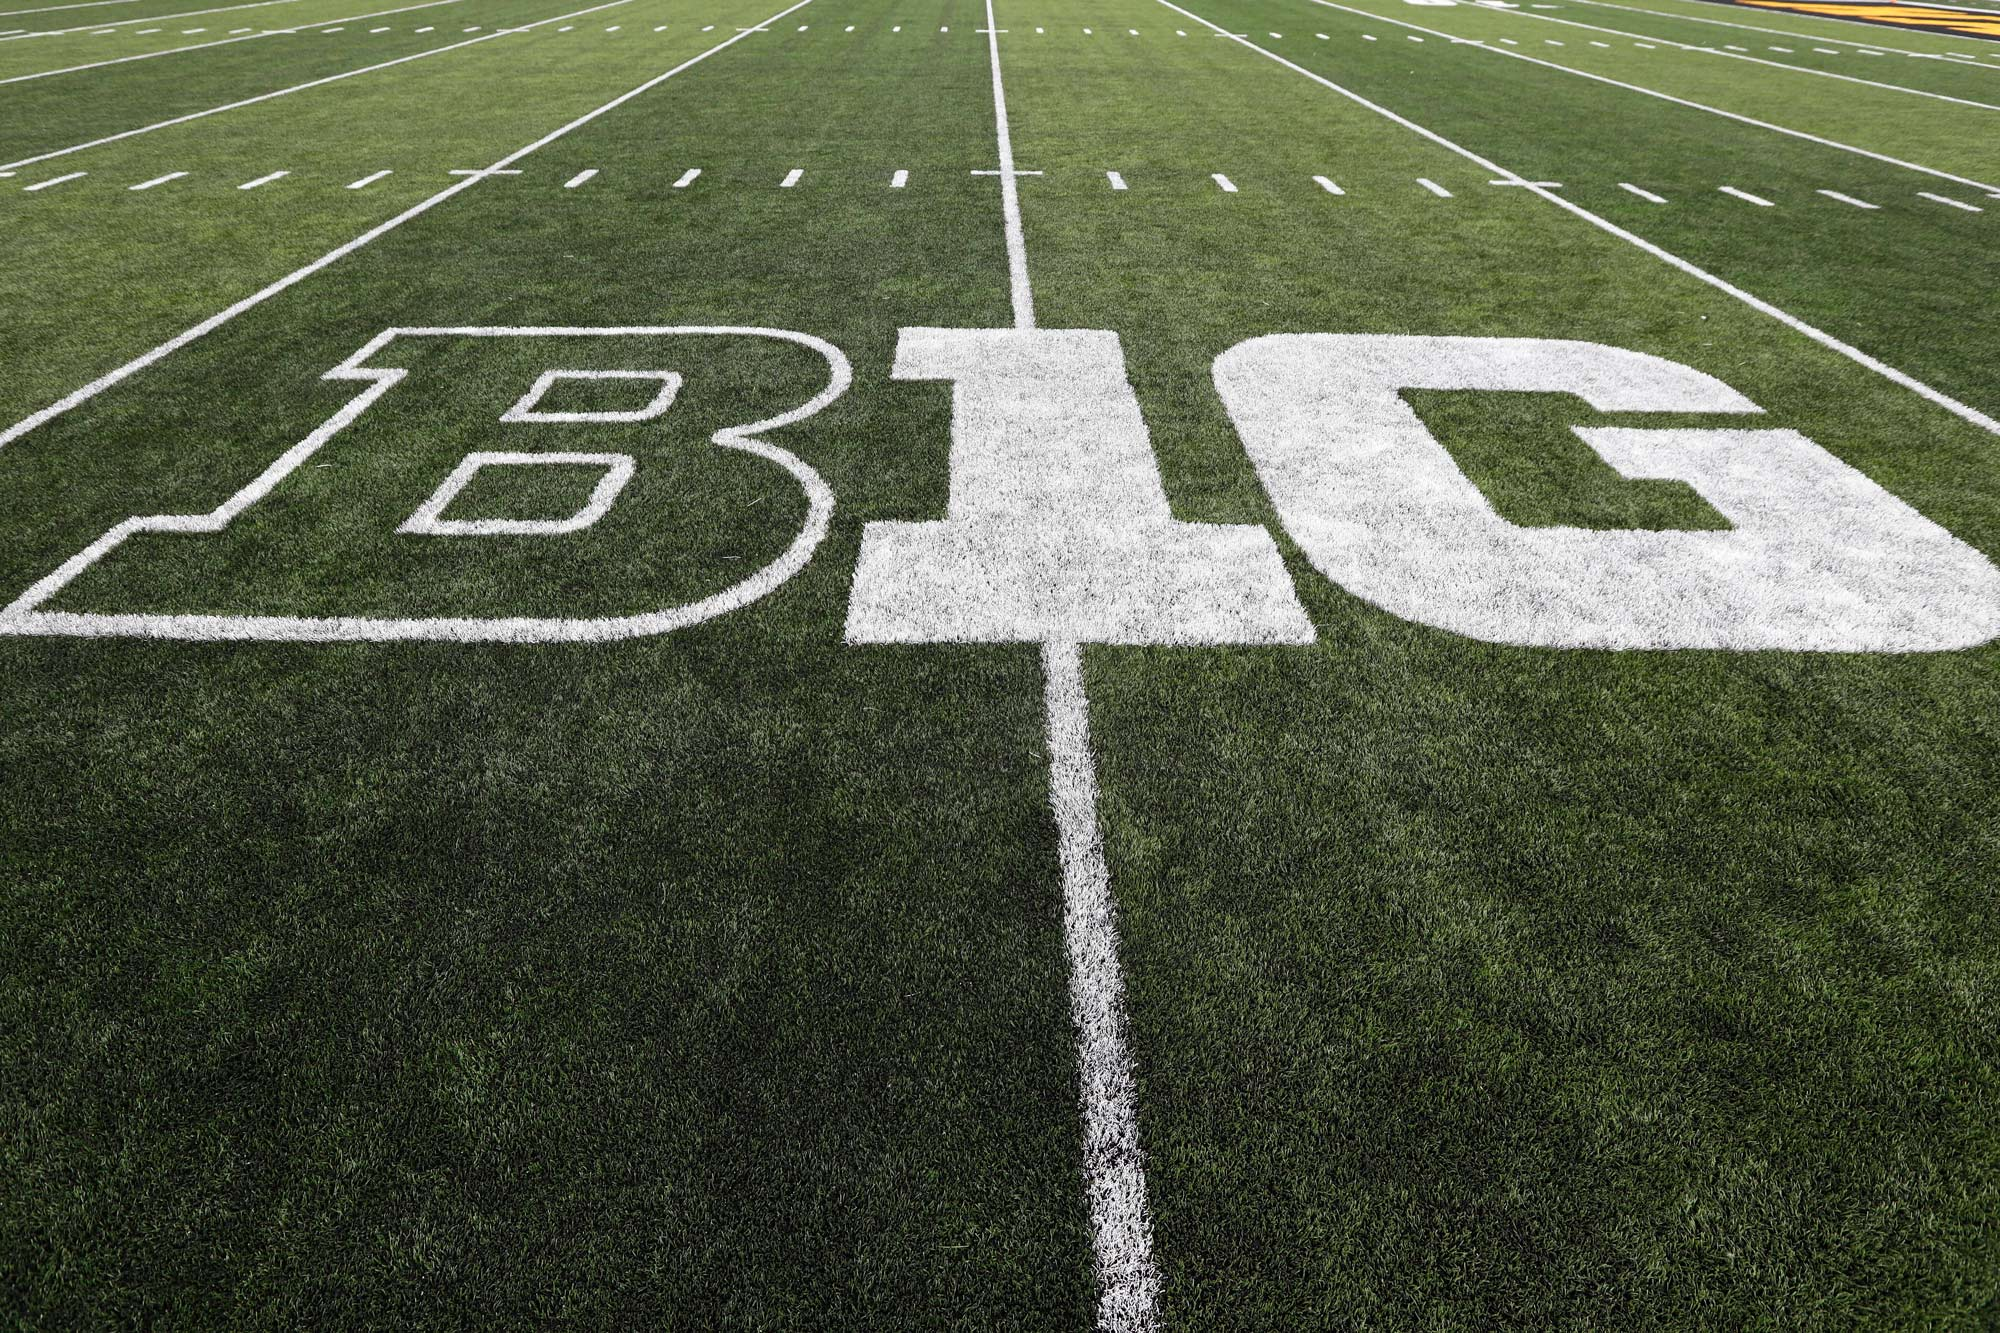 The Big Ten logo is displayed on the field before an NCAA college football game in Iowa City, Iowa, on August 31, 2019.